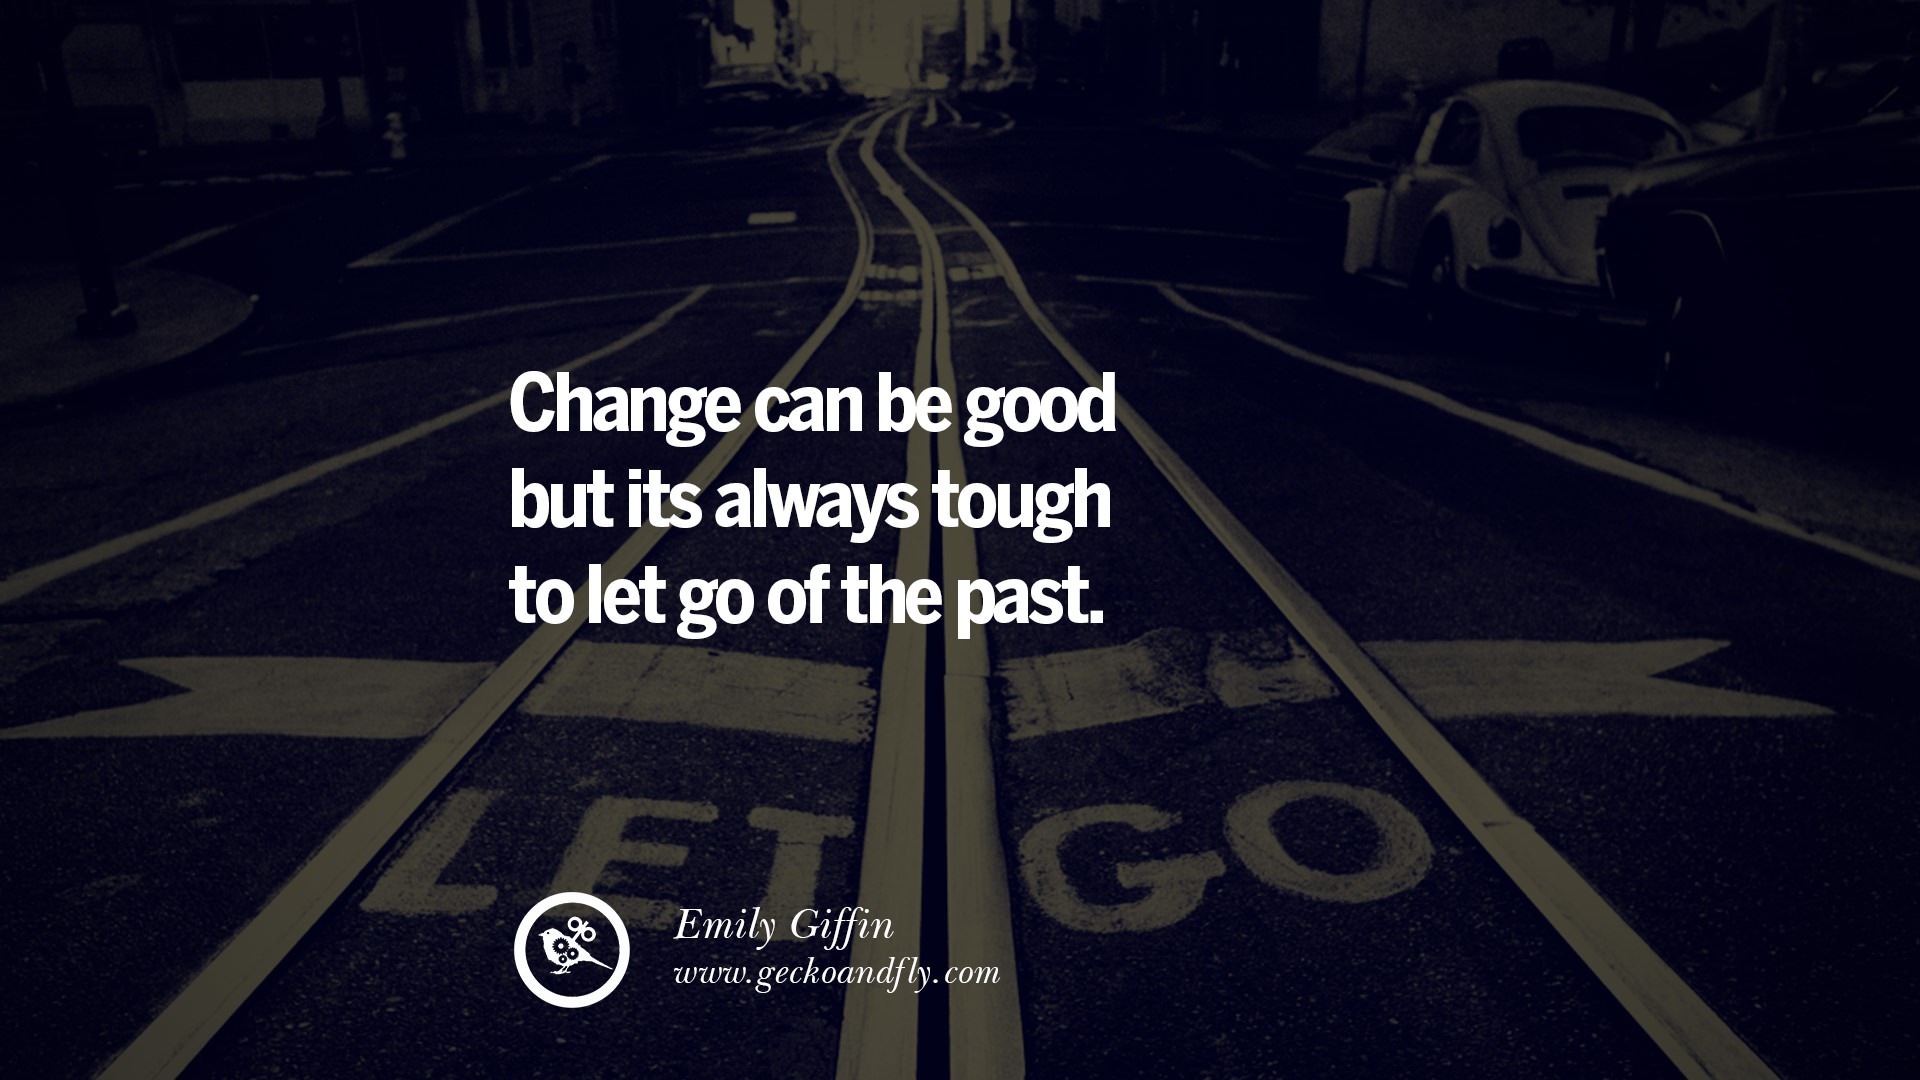 Change can be good but its always tough to let go of the past